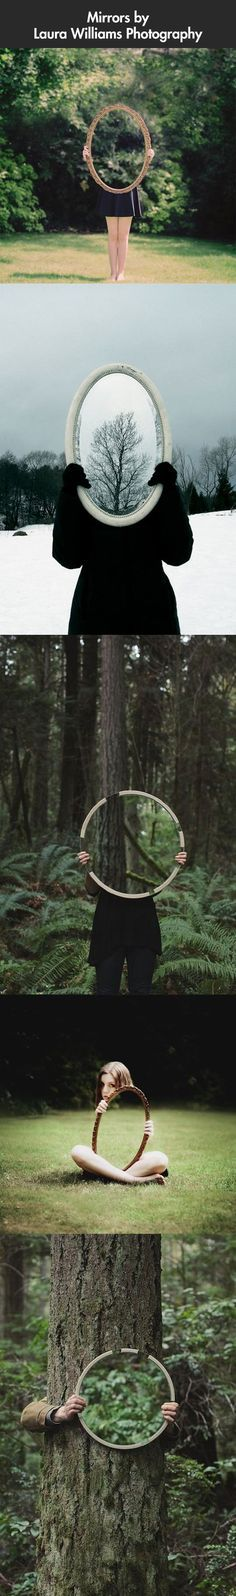 Playing with mirrors… this is awesome! I would love to try this in a photo shoot with someone!!!: